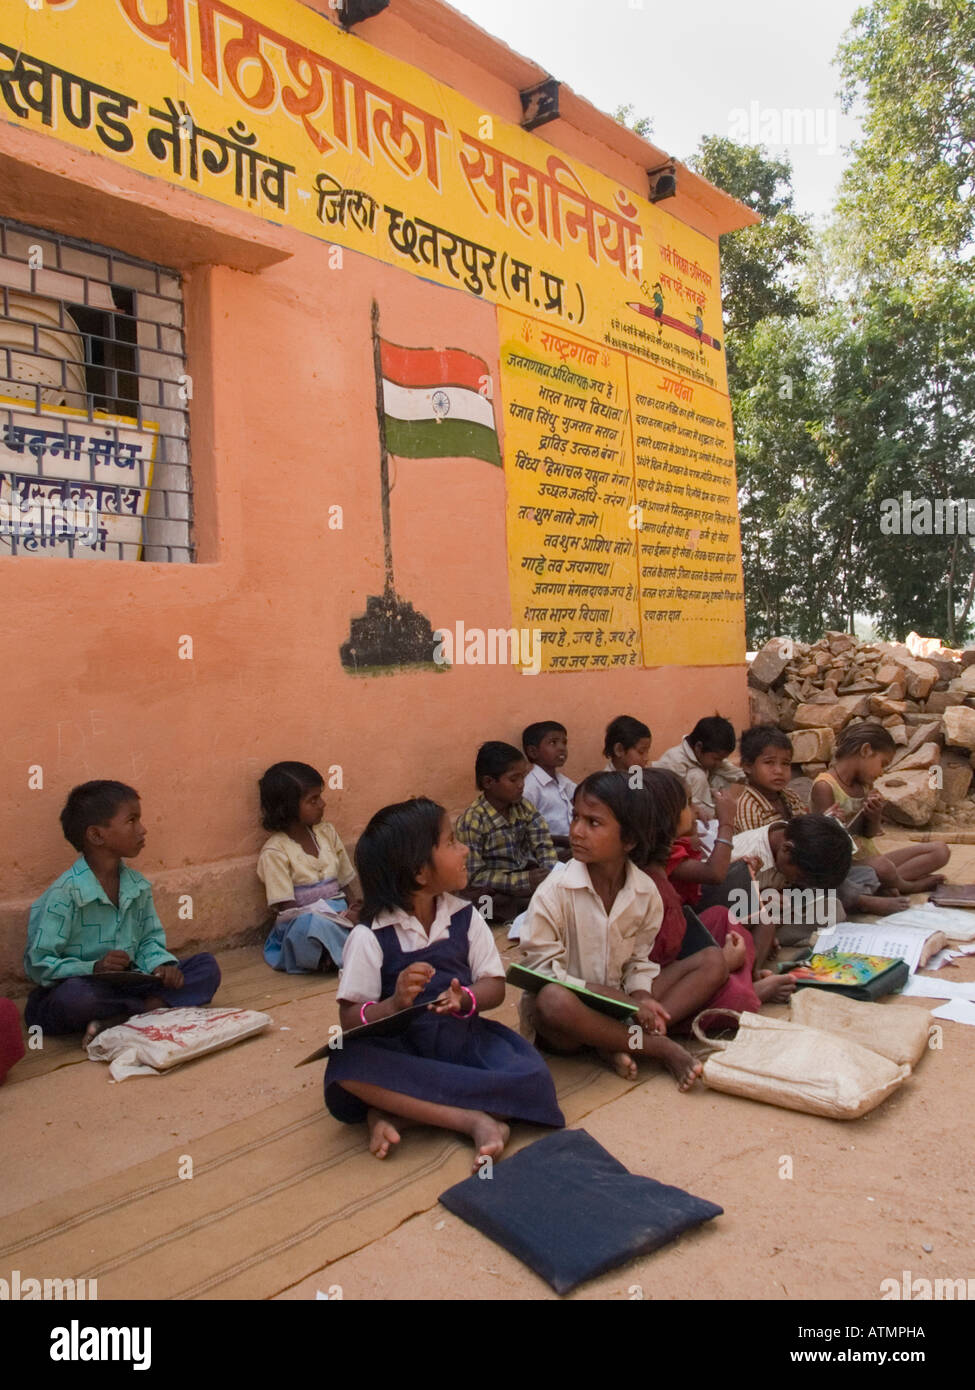 Rows of junior school children sitting on ground in shade outside rural village school for an outdoor lesson. Pradesh India - Stock Image